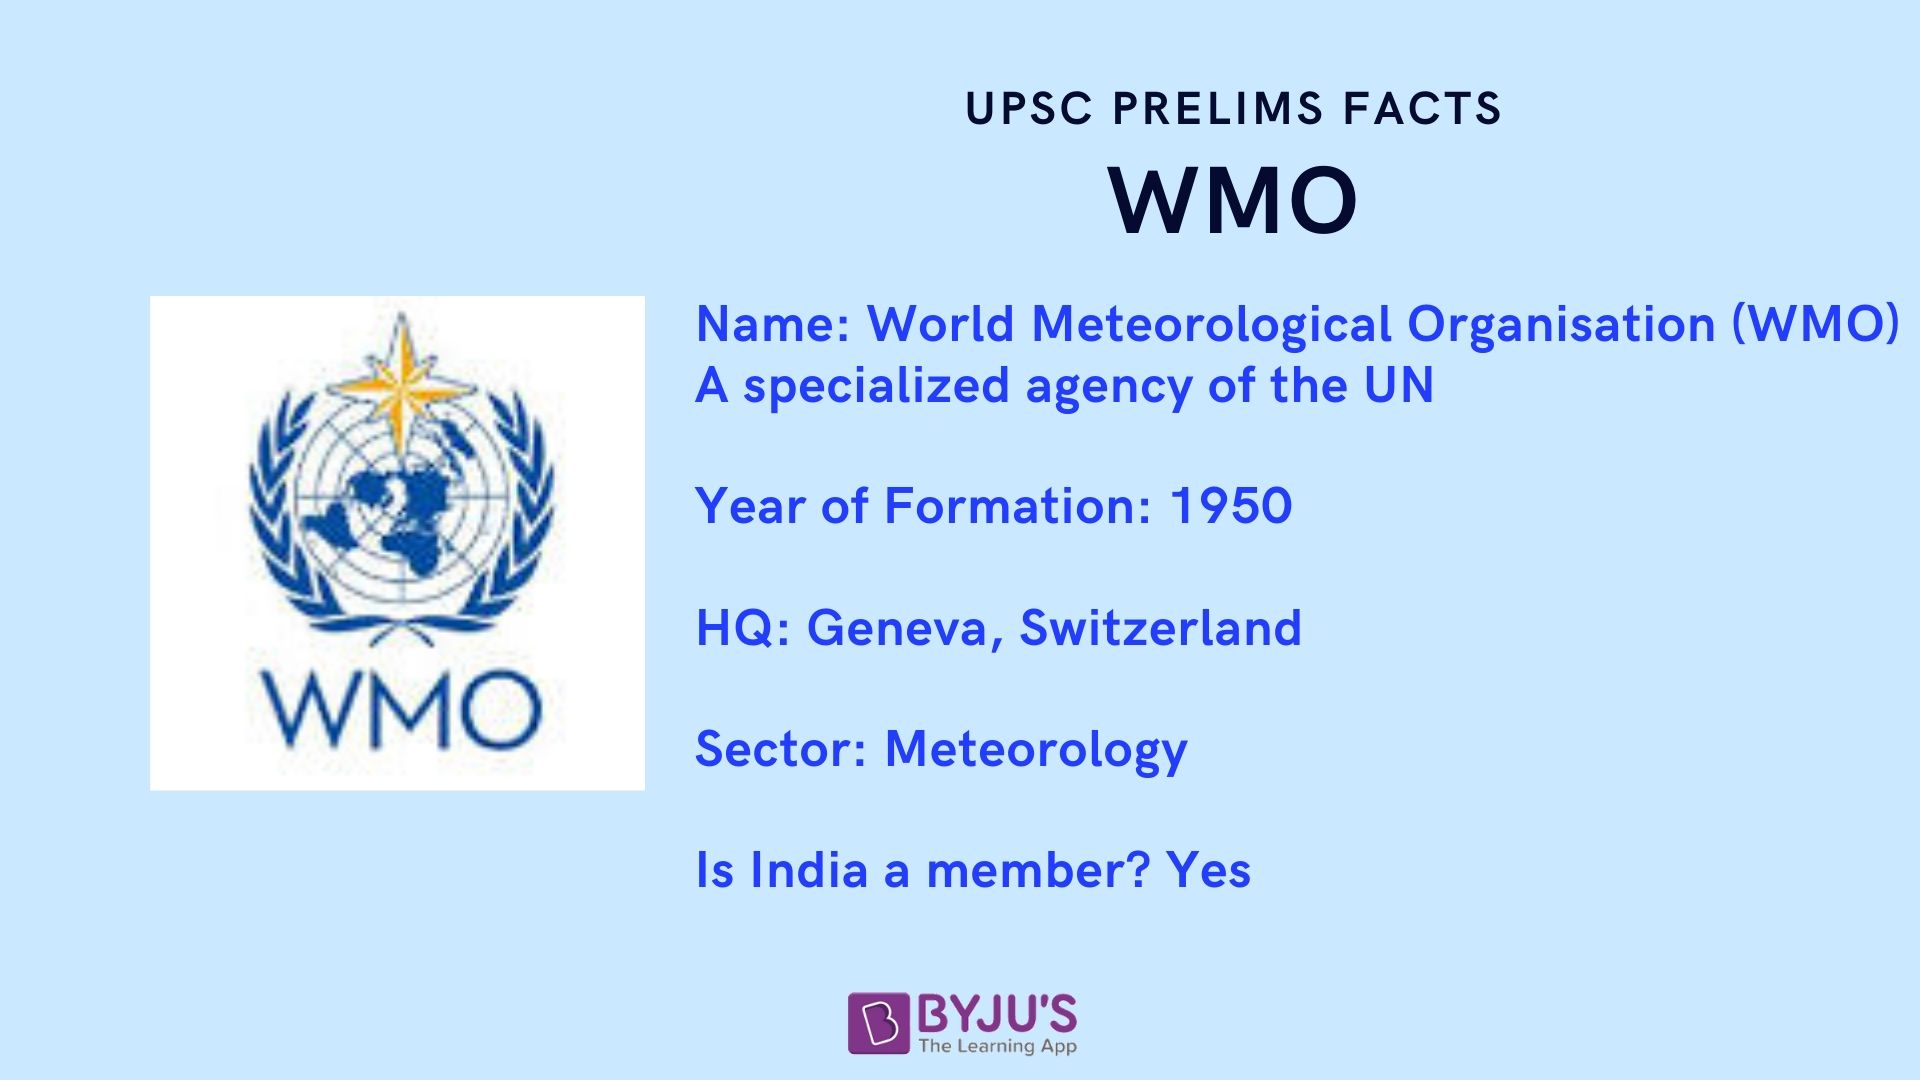 UPSC Prelims Facts - WMO